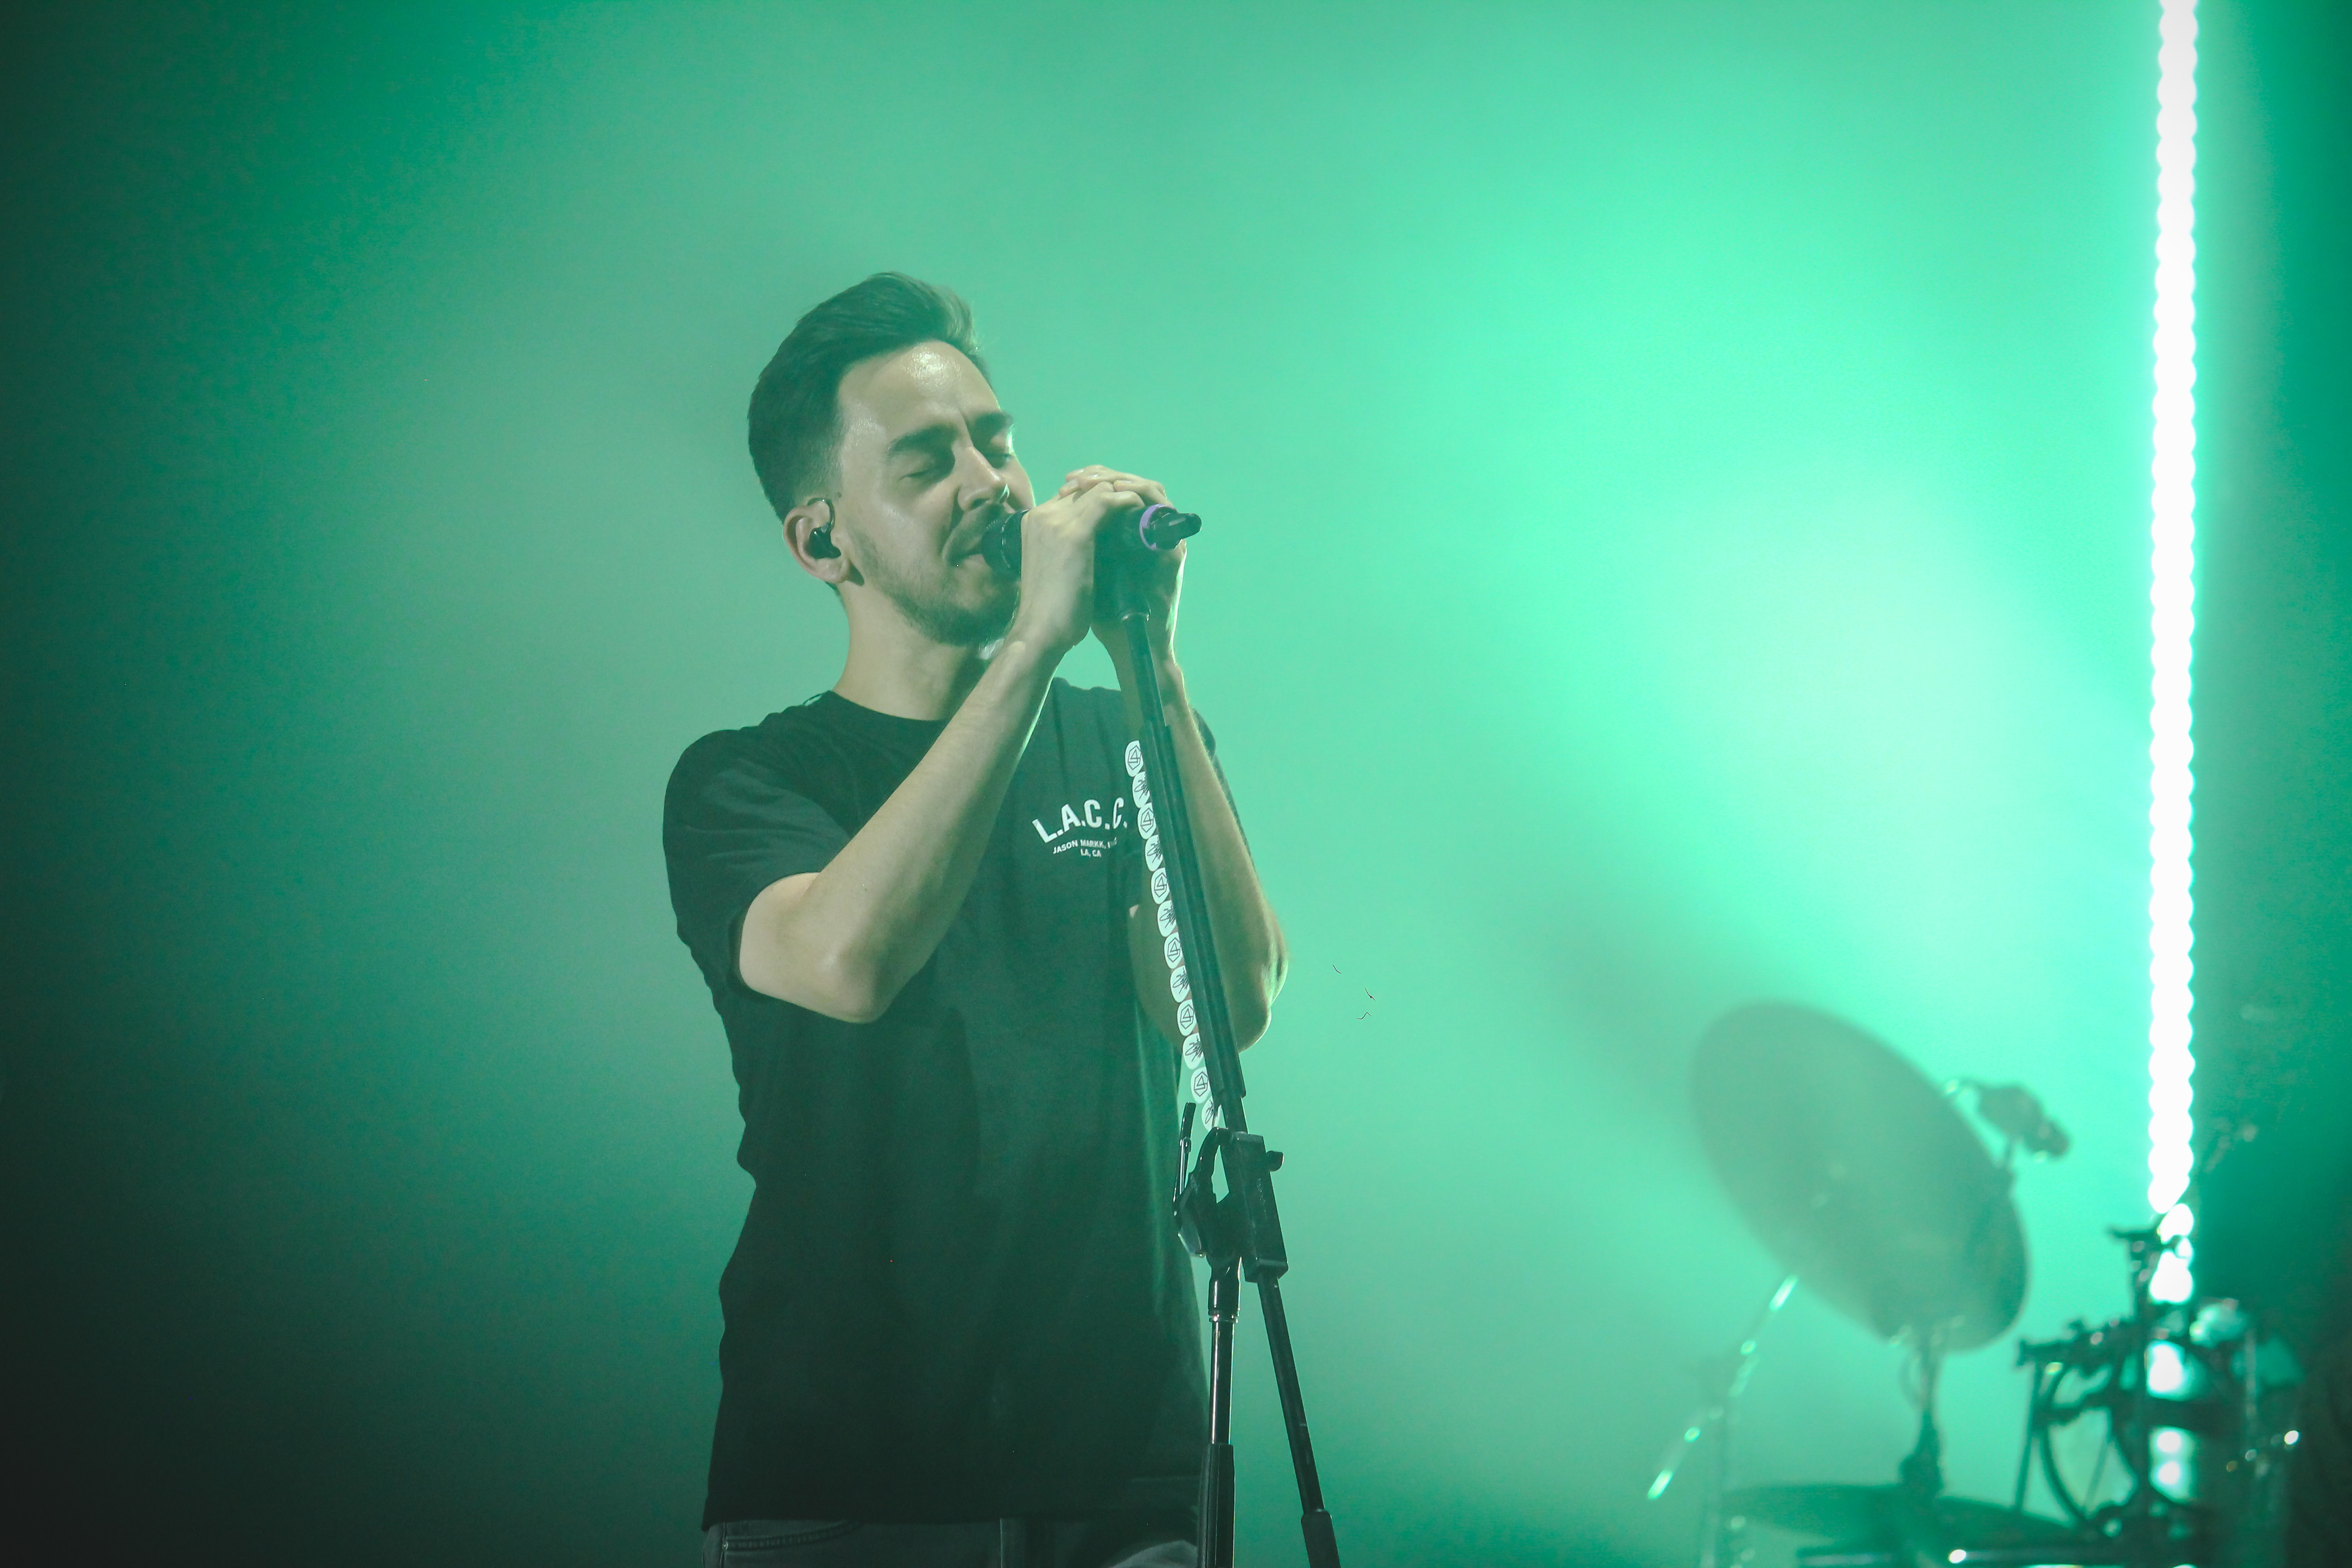 Man Wearing Black Crew-neck T-shirt Holding Microphone, Band, Singer, Rock, Person, HQ Photo